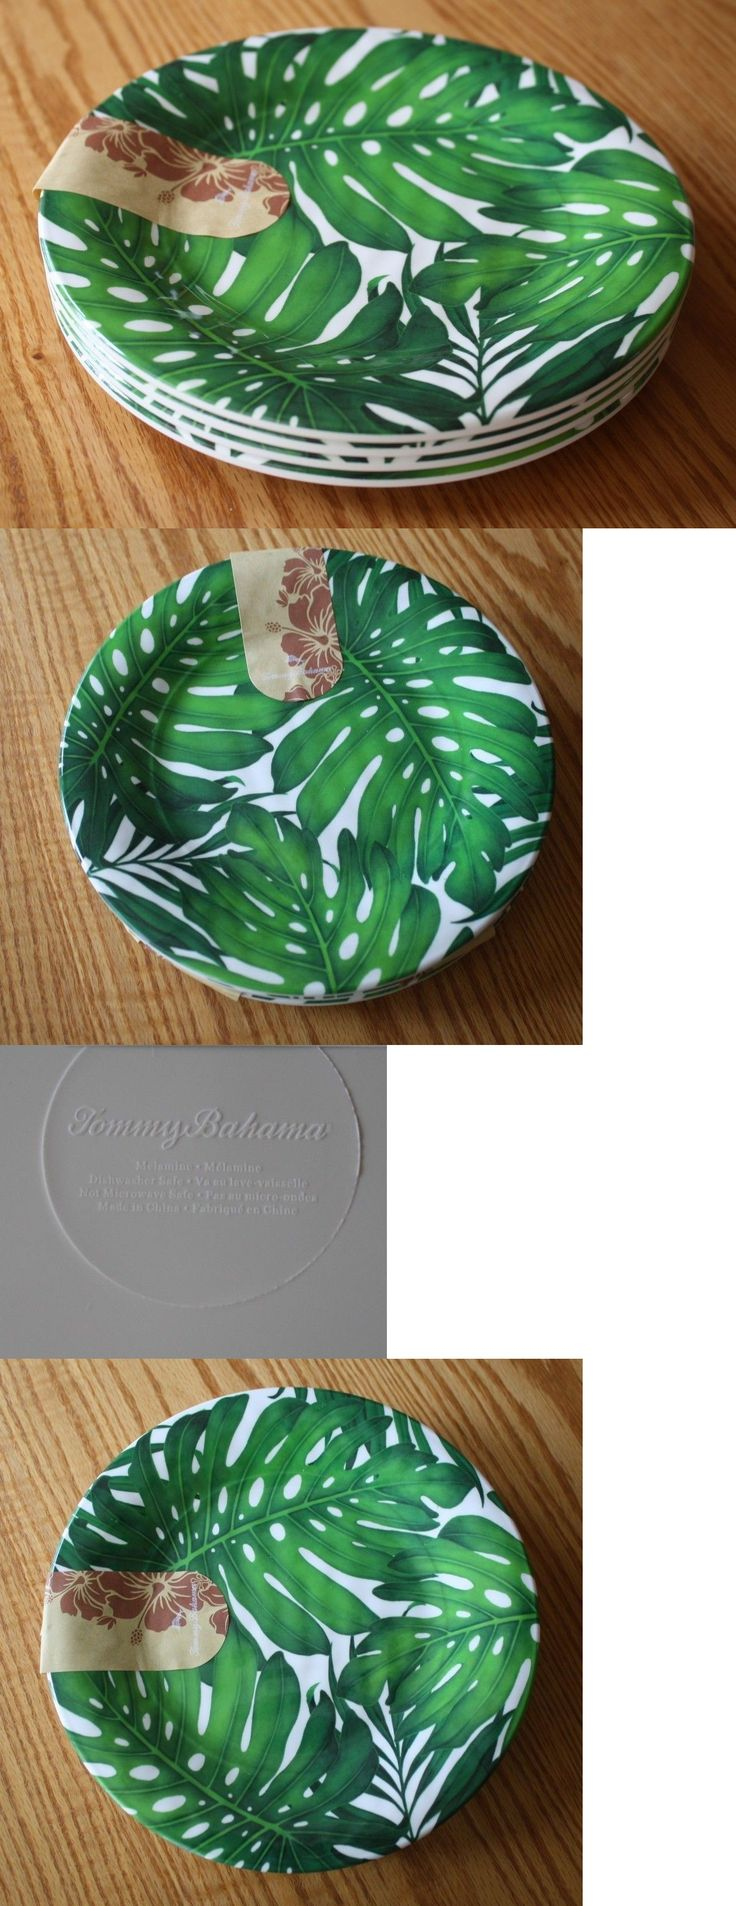 Plates 36030: Set 4 Tommy Bahama Hawaiian Tropical Green Palm Trees Melamine 10 Dinner Plates -> BUY IT NOW ONLY: $37.99 on eBay!